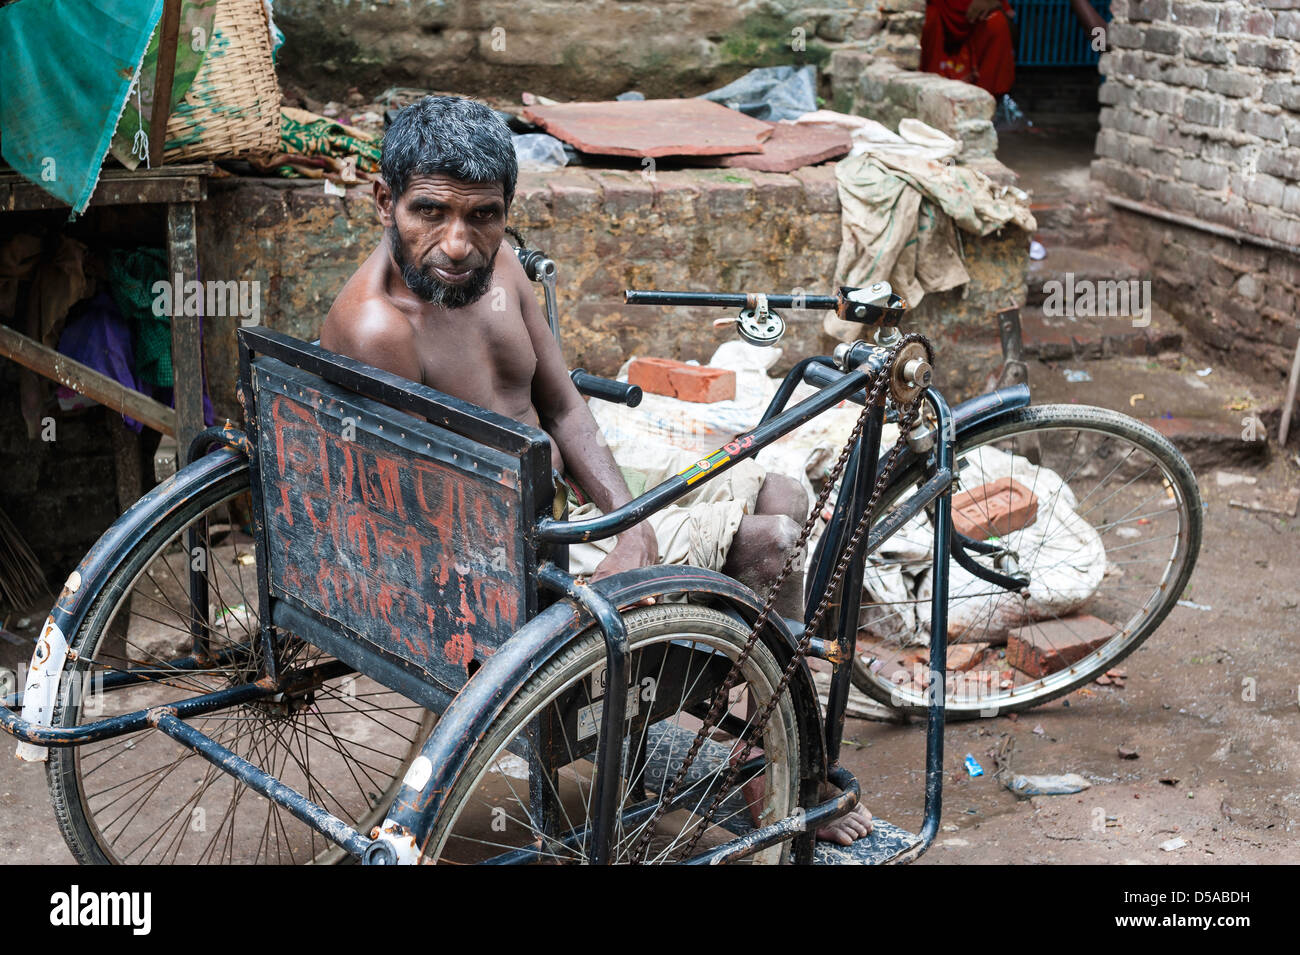 Man with disability in adapted tricycle begging in Nizamuddin, an old part of Delhi, India. - Stock Image